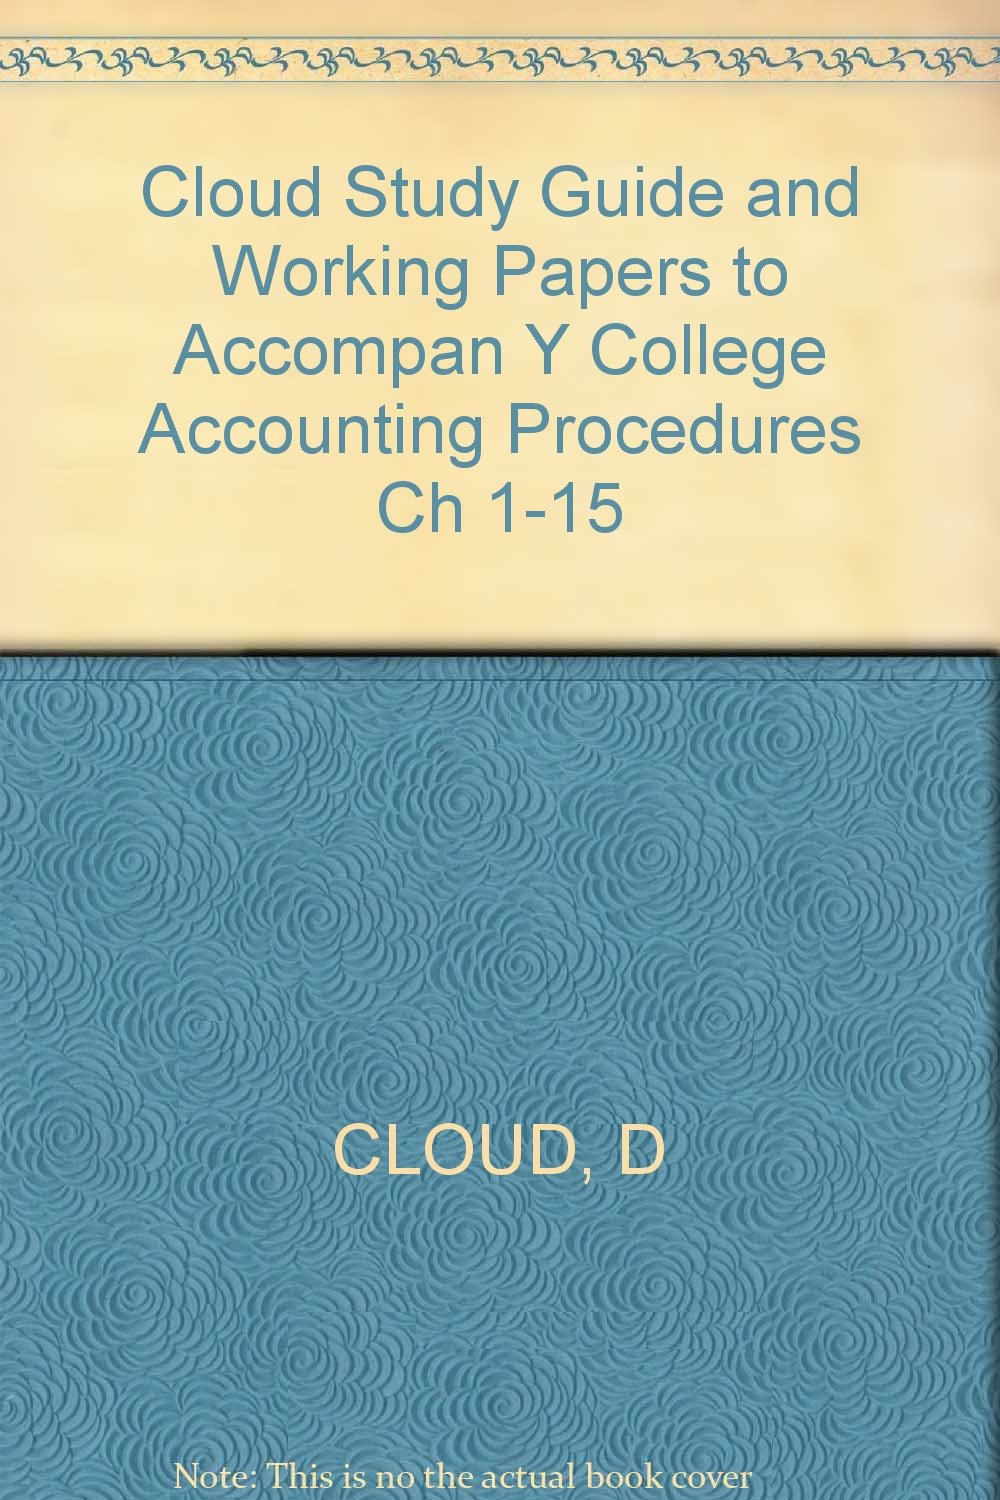 Cloud Study Guide and Working Papers to Accompan Y College Accounting  Procedures Ch 1-15: Douglas Cloud: 9780471885931: Amazon.com: Books